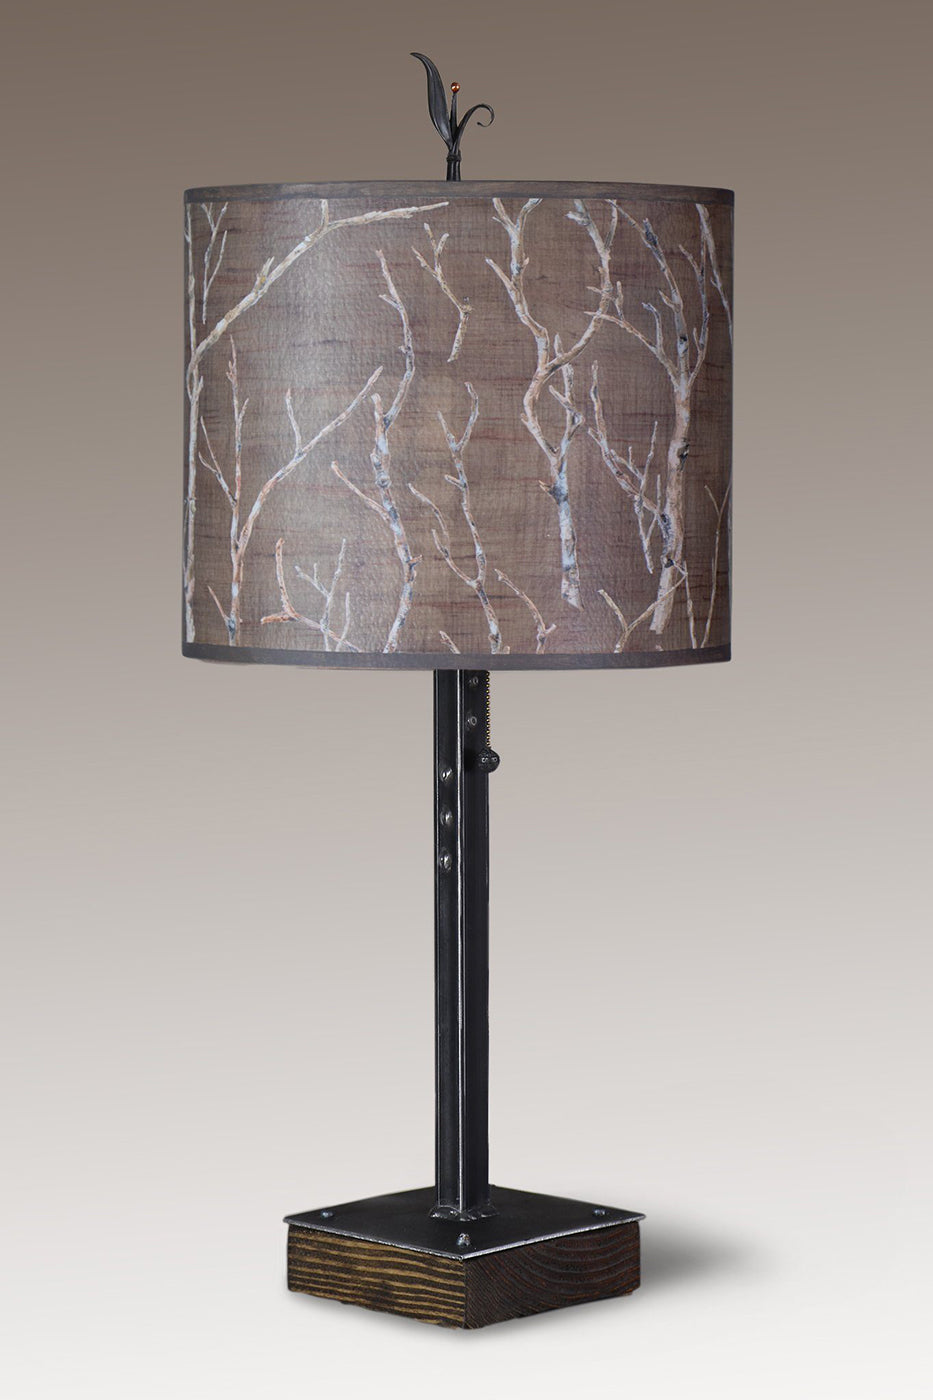 Steel Table Lamp on Wood with Large Oval Shade in Twigs